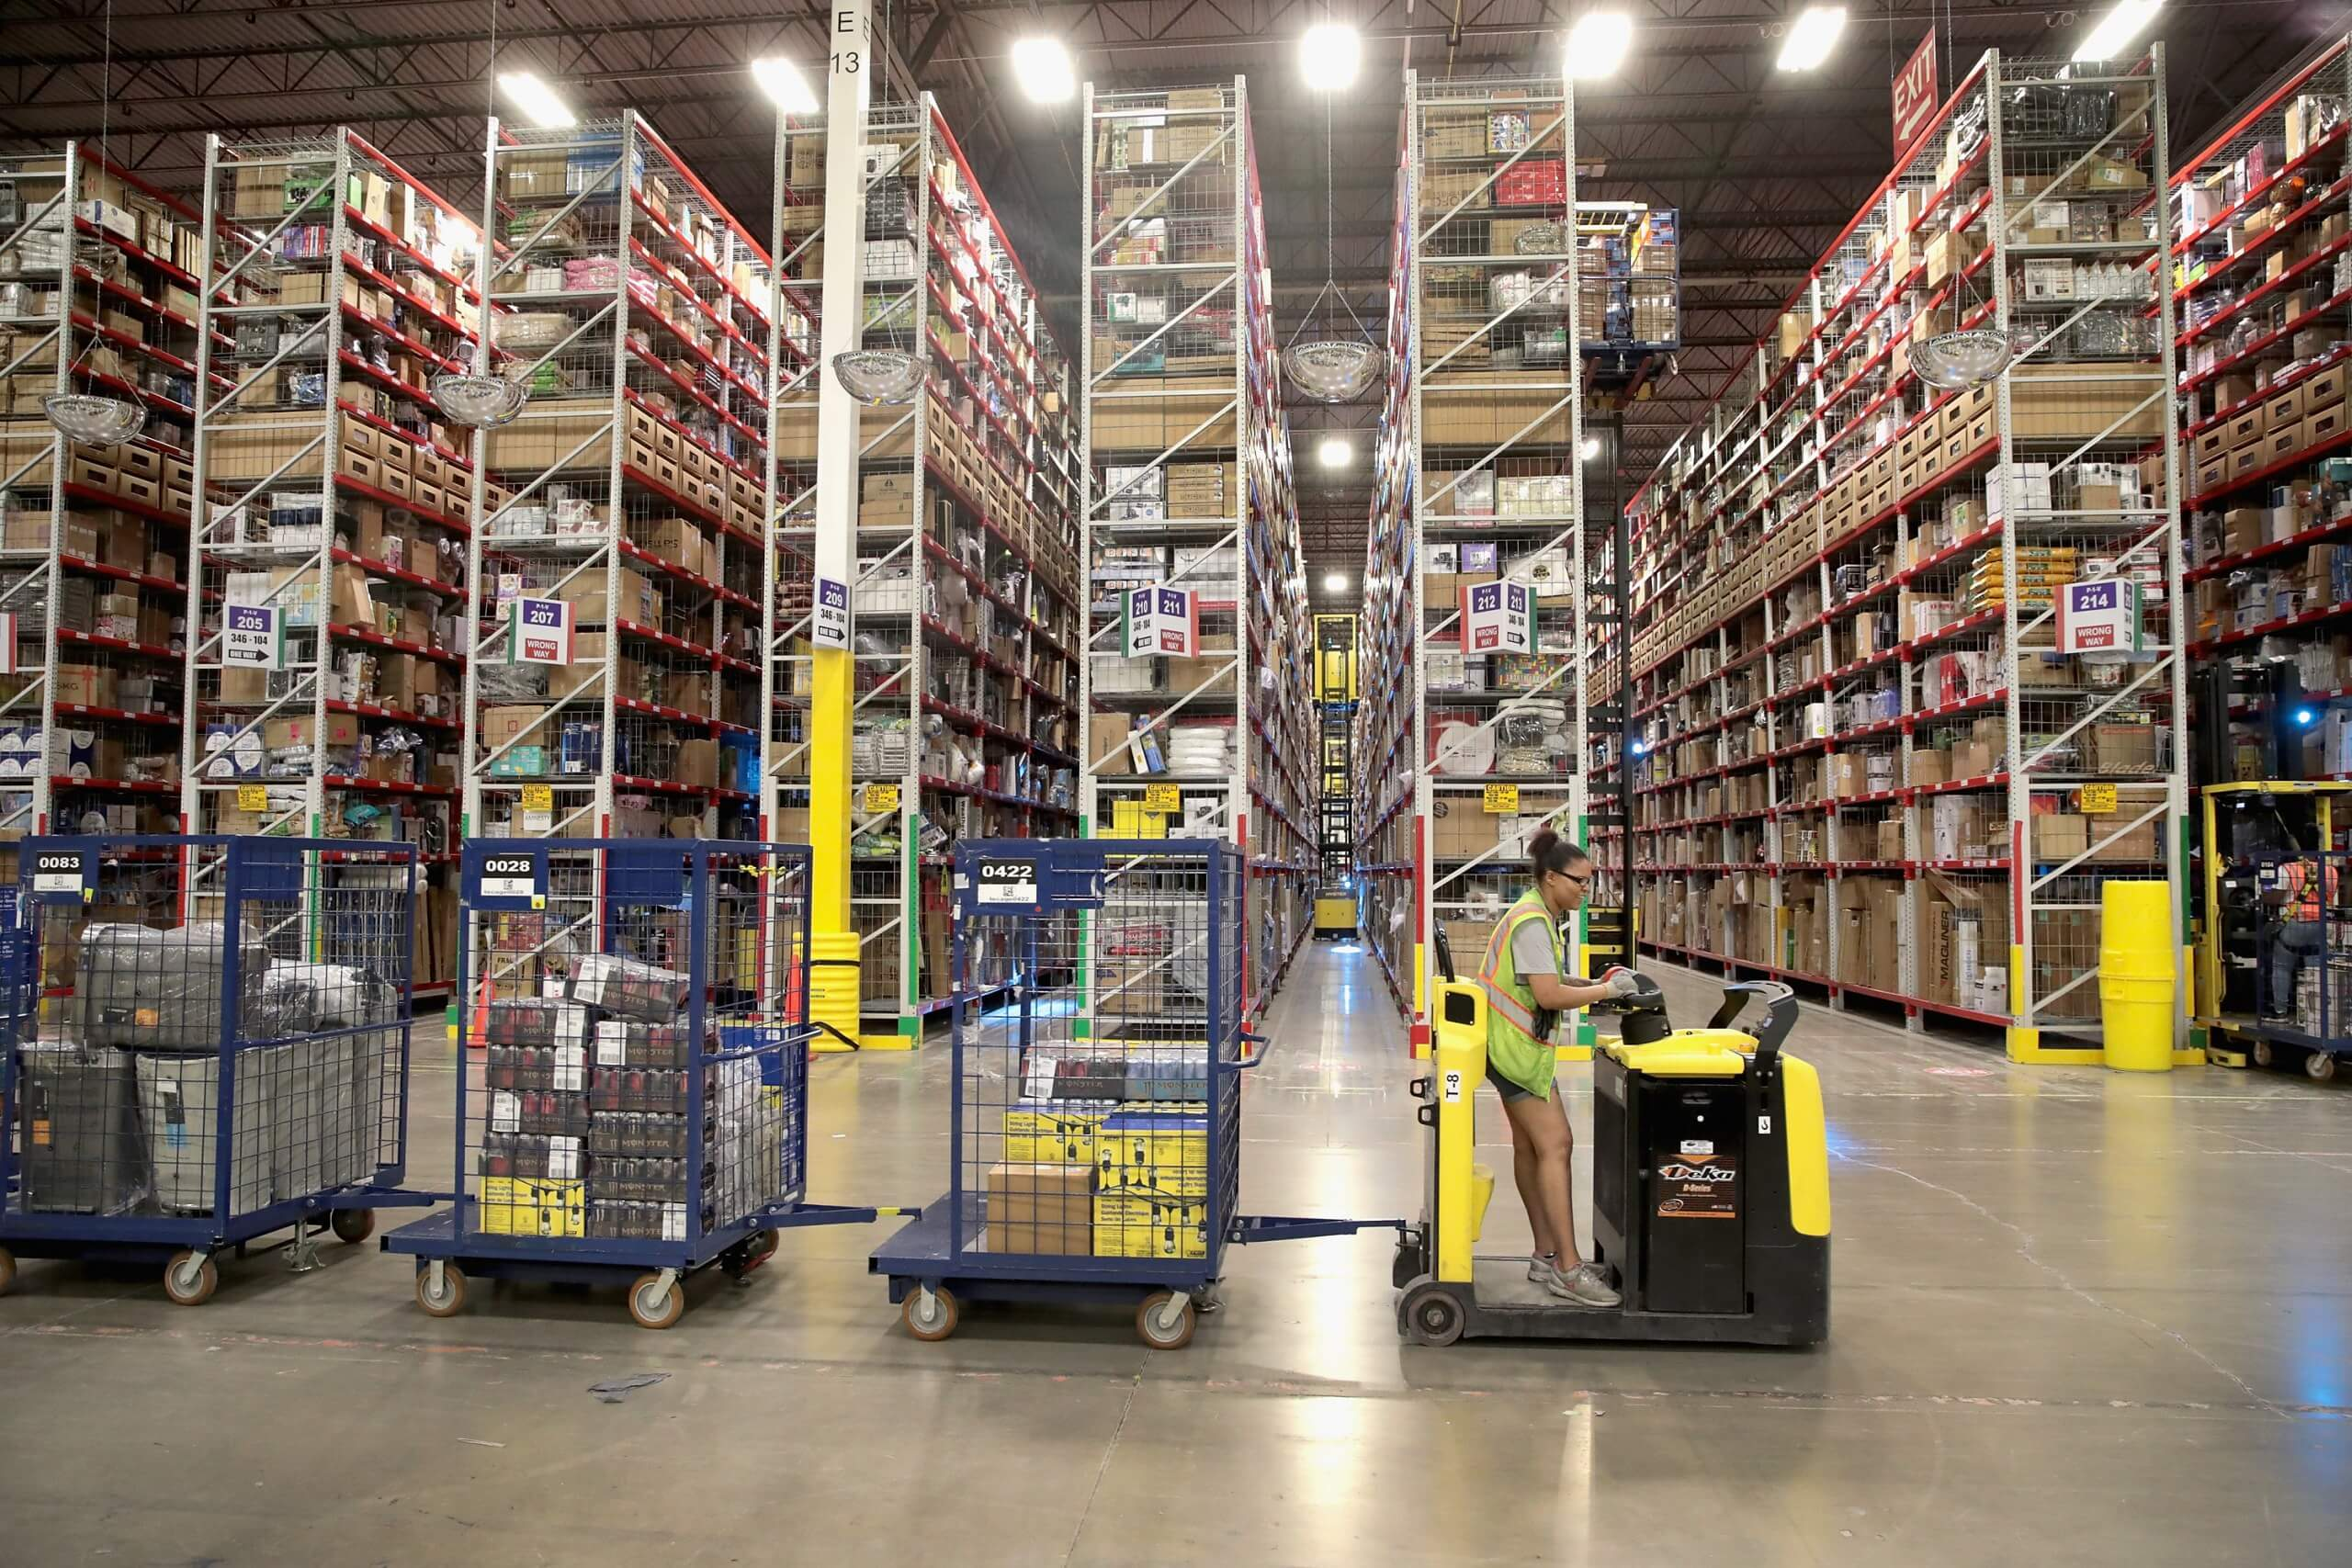 Robot in Amazon warehouse hospitalises 24 workers with bear repellent spray